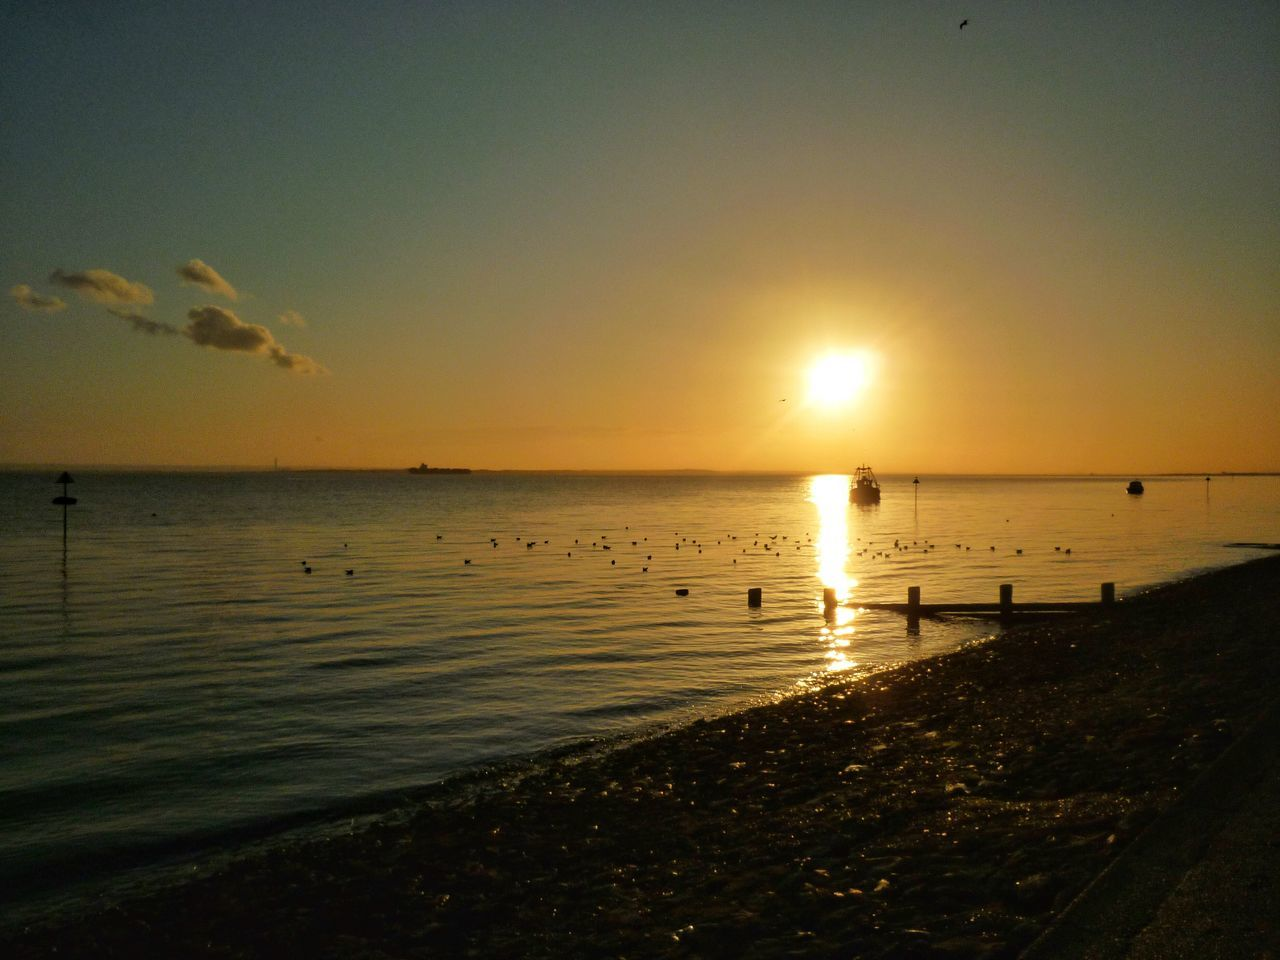 Sun setting on Southend beach. Sea Sun, Sea, Sky Sea And Sun Seascape Tide Sun On The Sea Sun On The Water Sun On Water  Sunset Sun Southend On Sea Southend Seafront Southend Seafront Sea Front Seaside Sea And Sky The Great Outdoors - 2016 EyeEm Awards